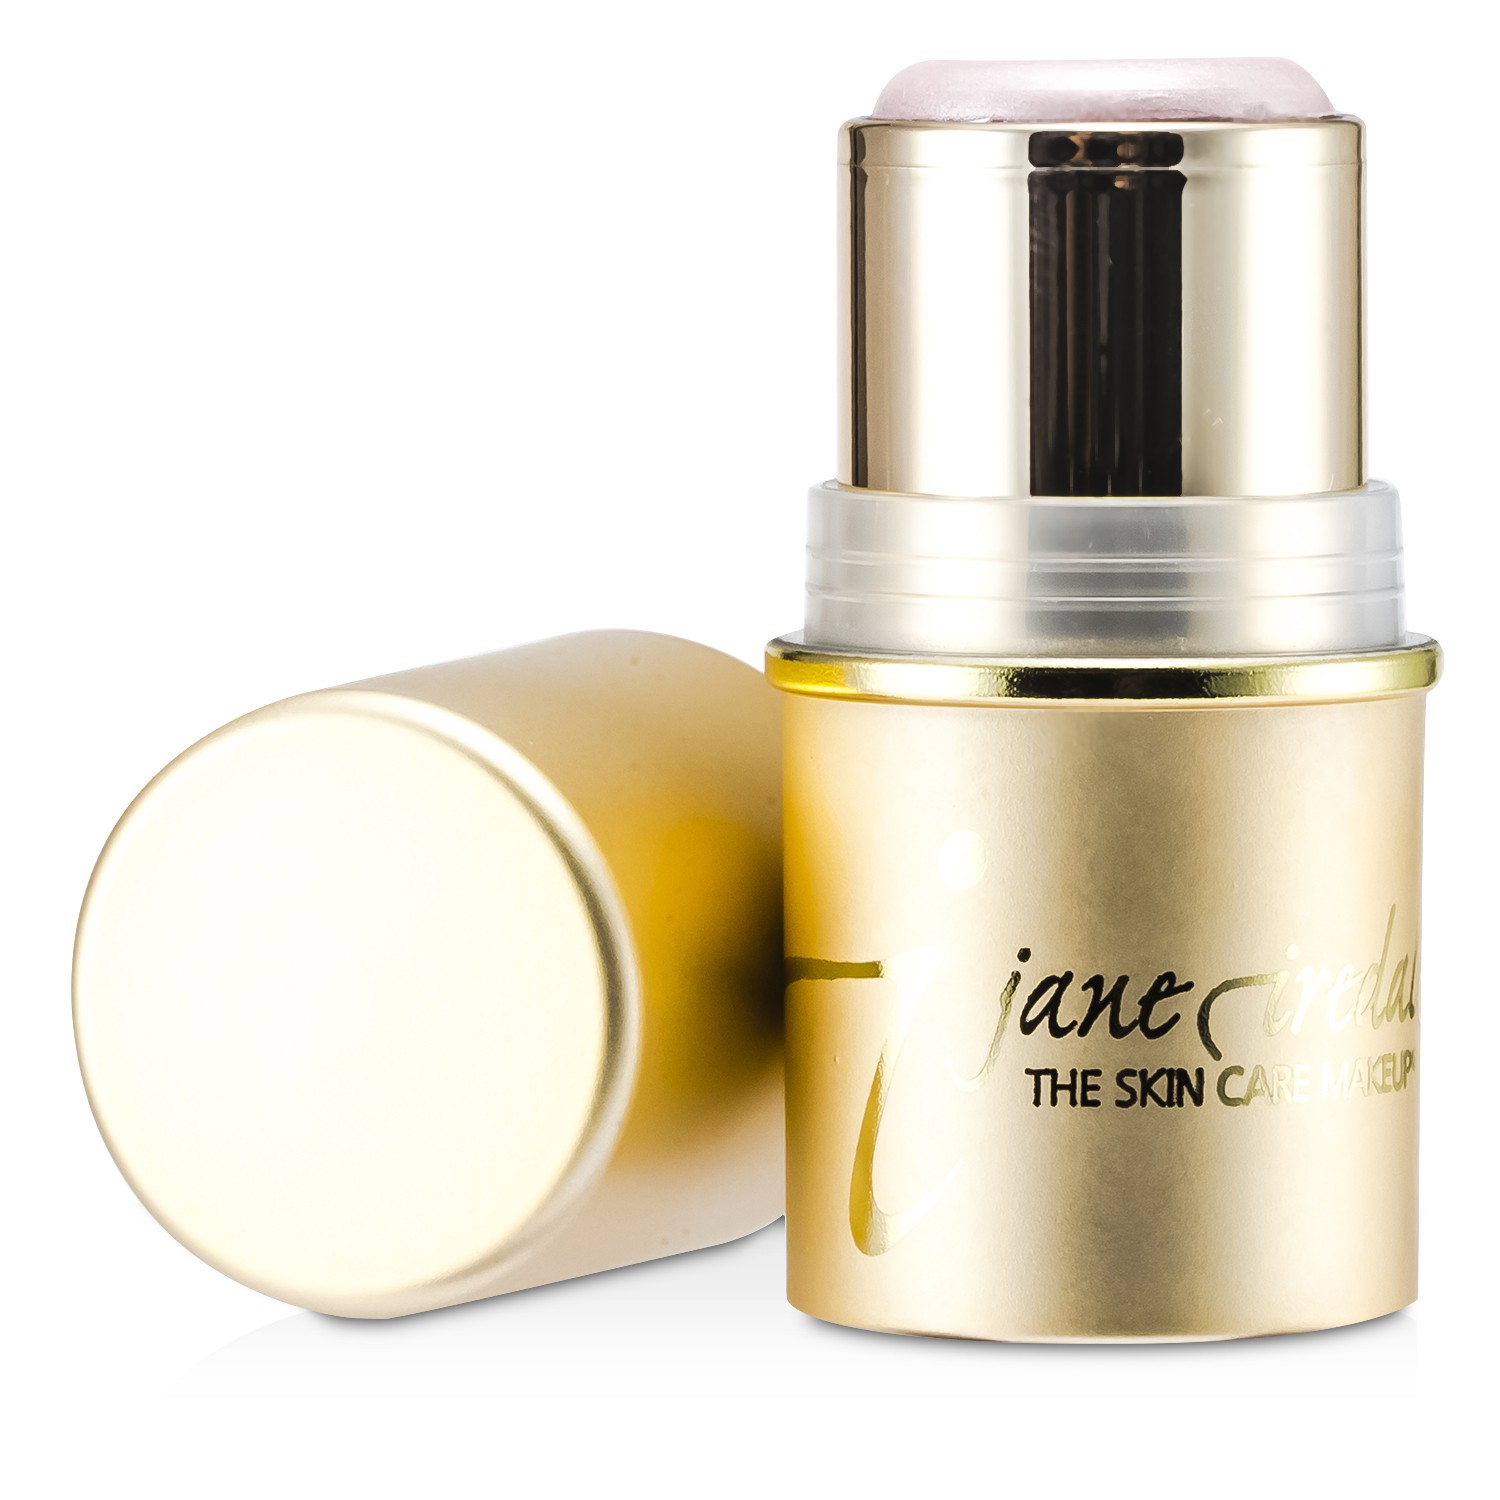 愛芮兒珍 Jane Iredale - 打亮膏 In Touch Highlighter